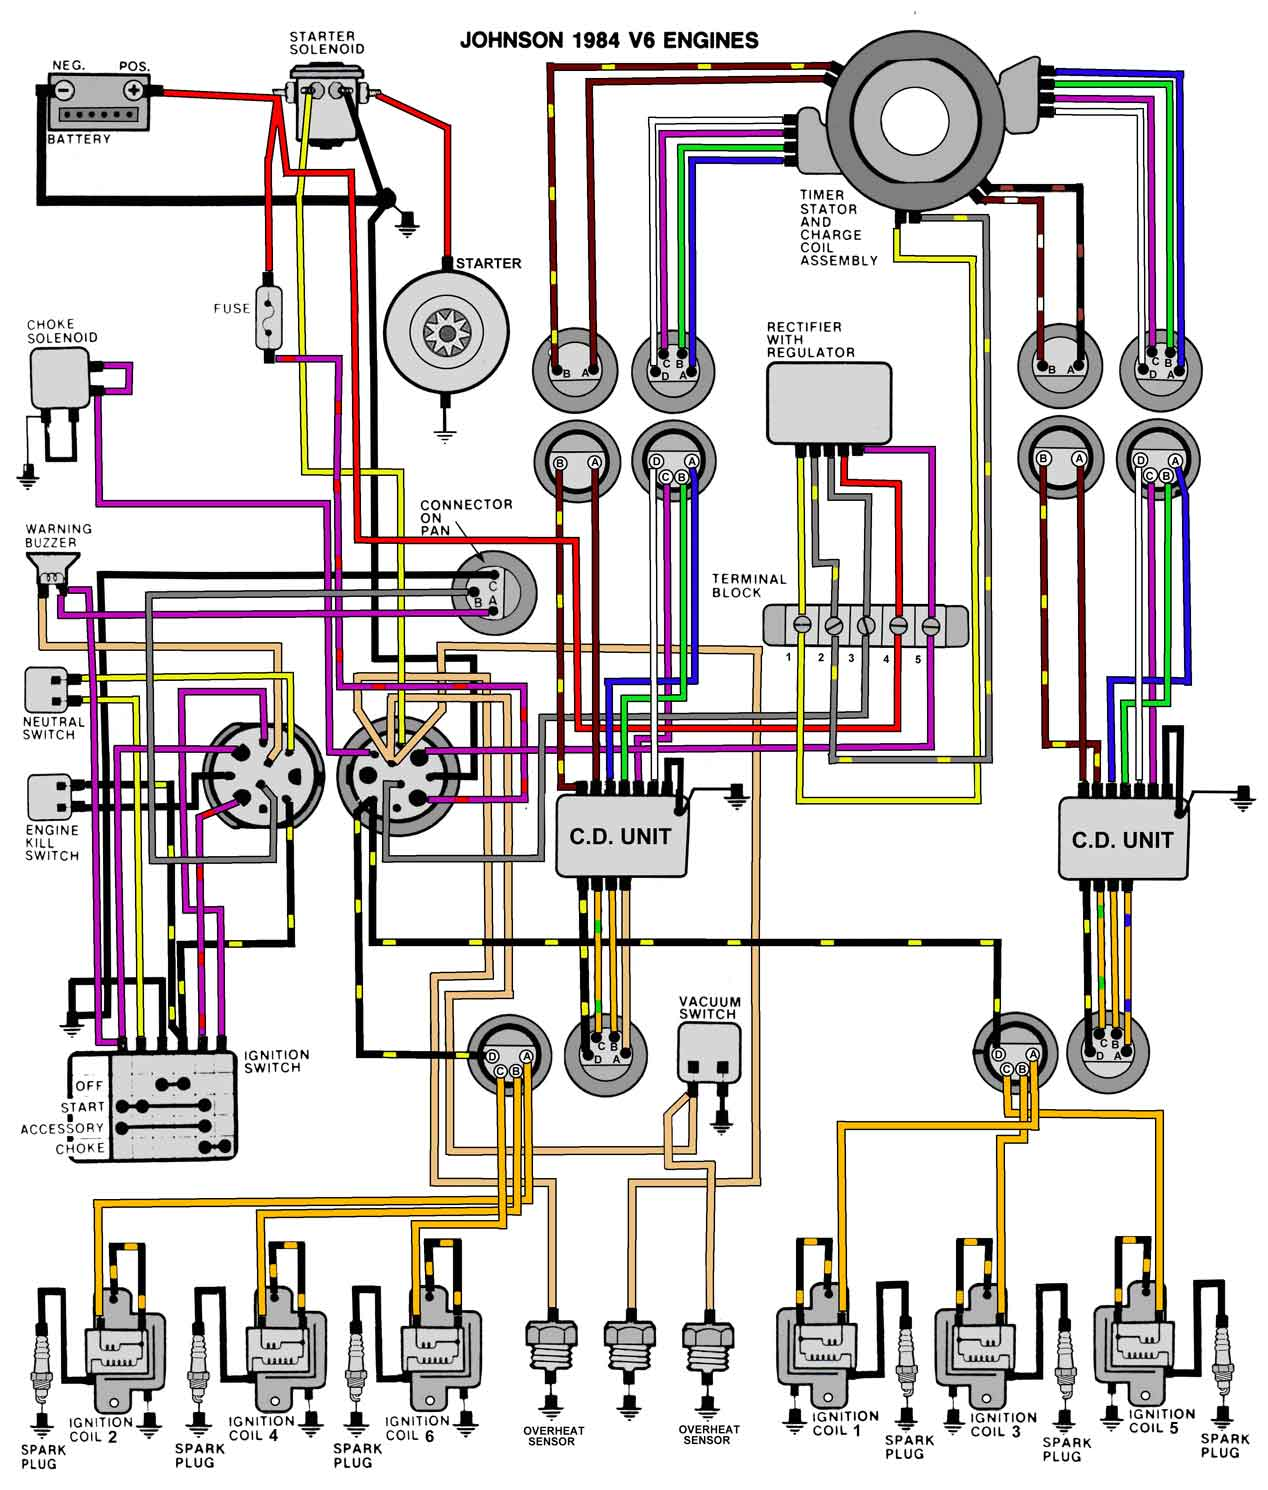 84_V6 mastertech marine evinrude johnson outboard wiring diagrams evinrude etec wiring diagram at fashall.co